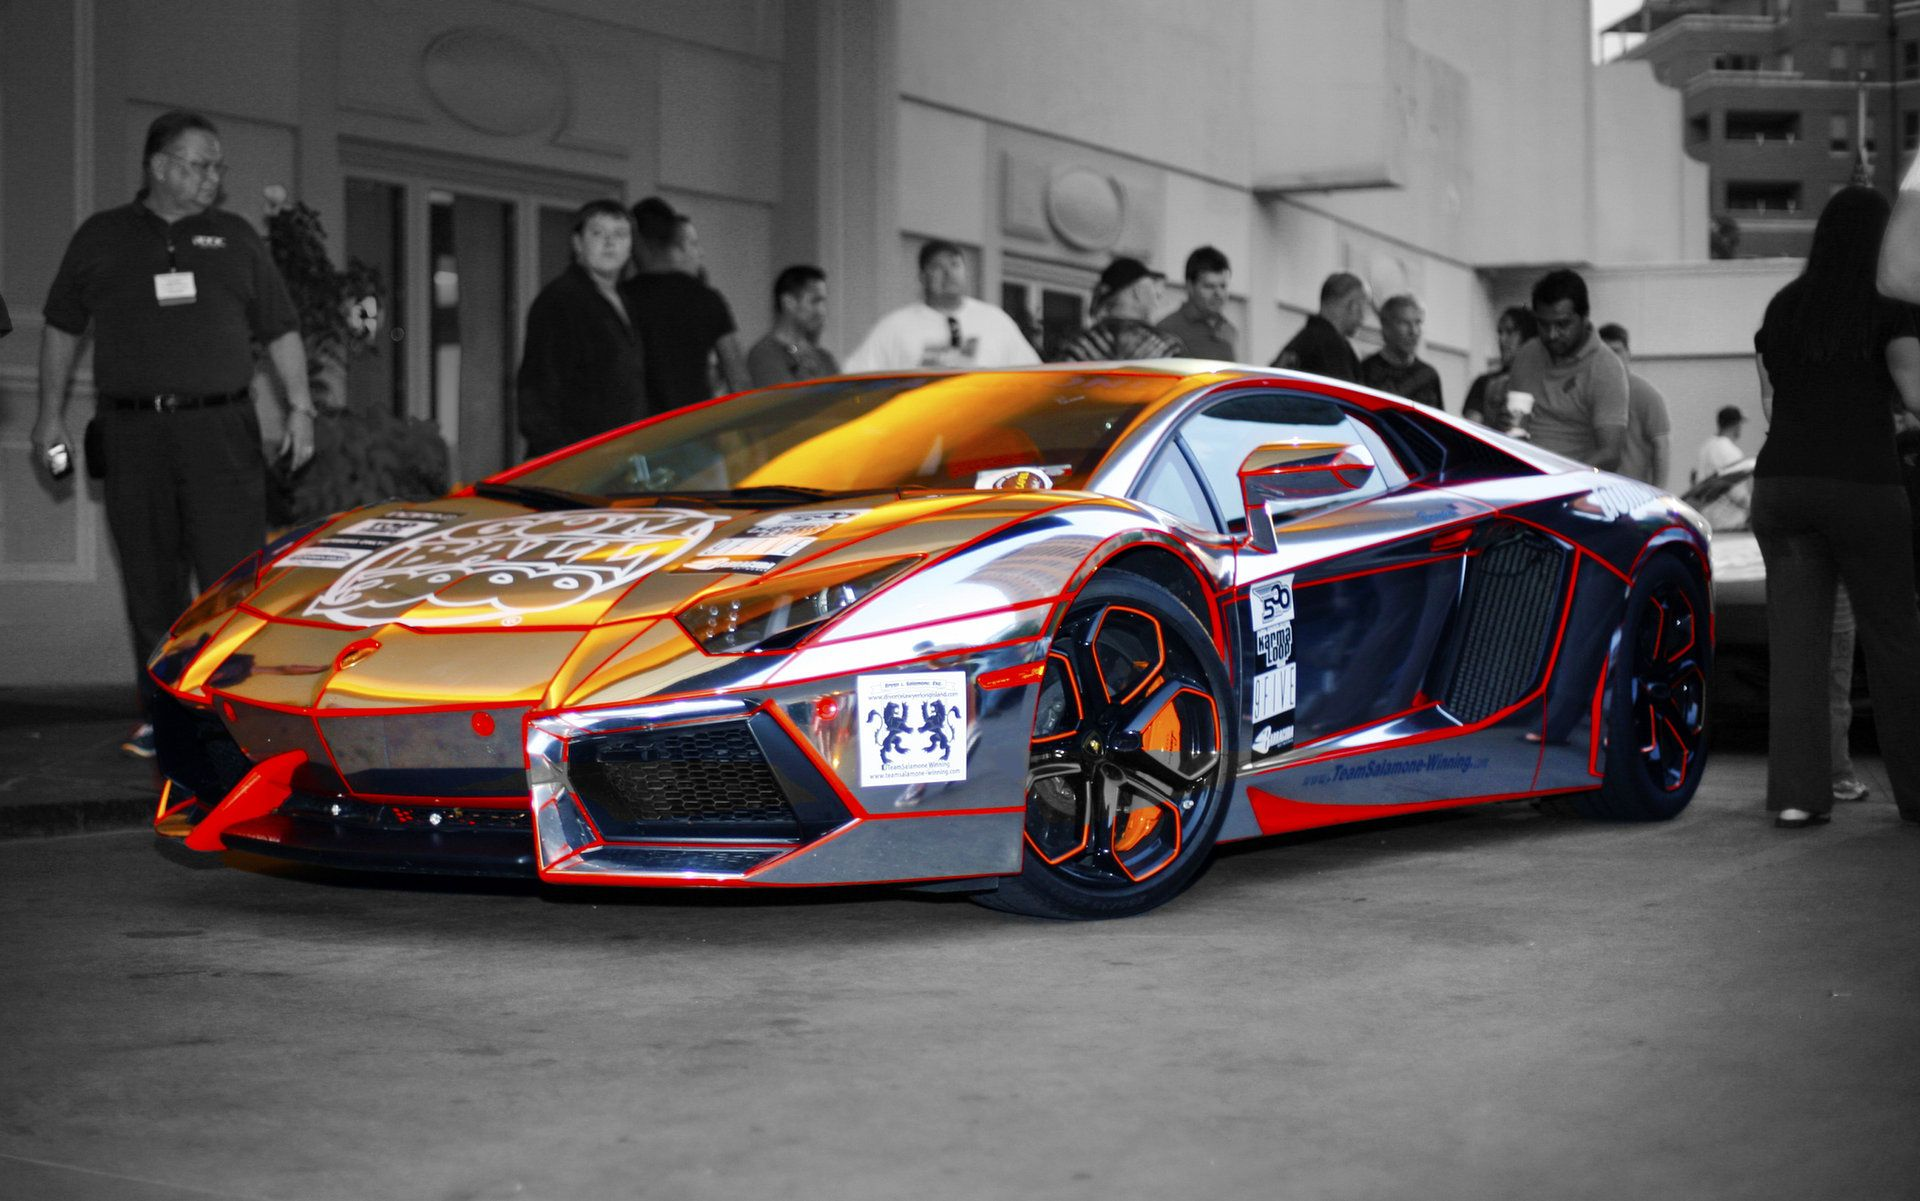 Cool Chrome/ Tron themed wrap on Lambo Aventador | Gumball ...